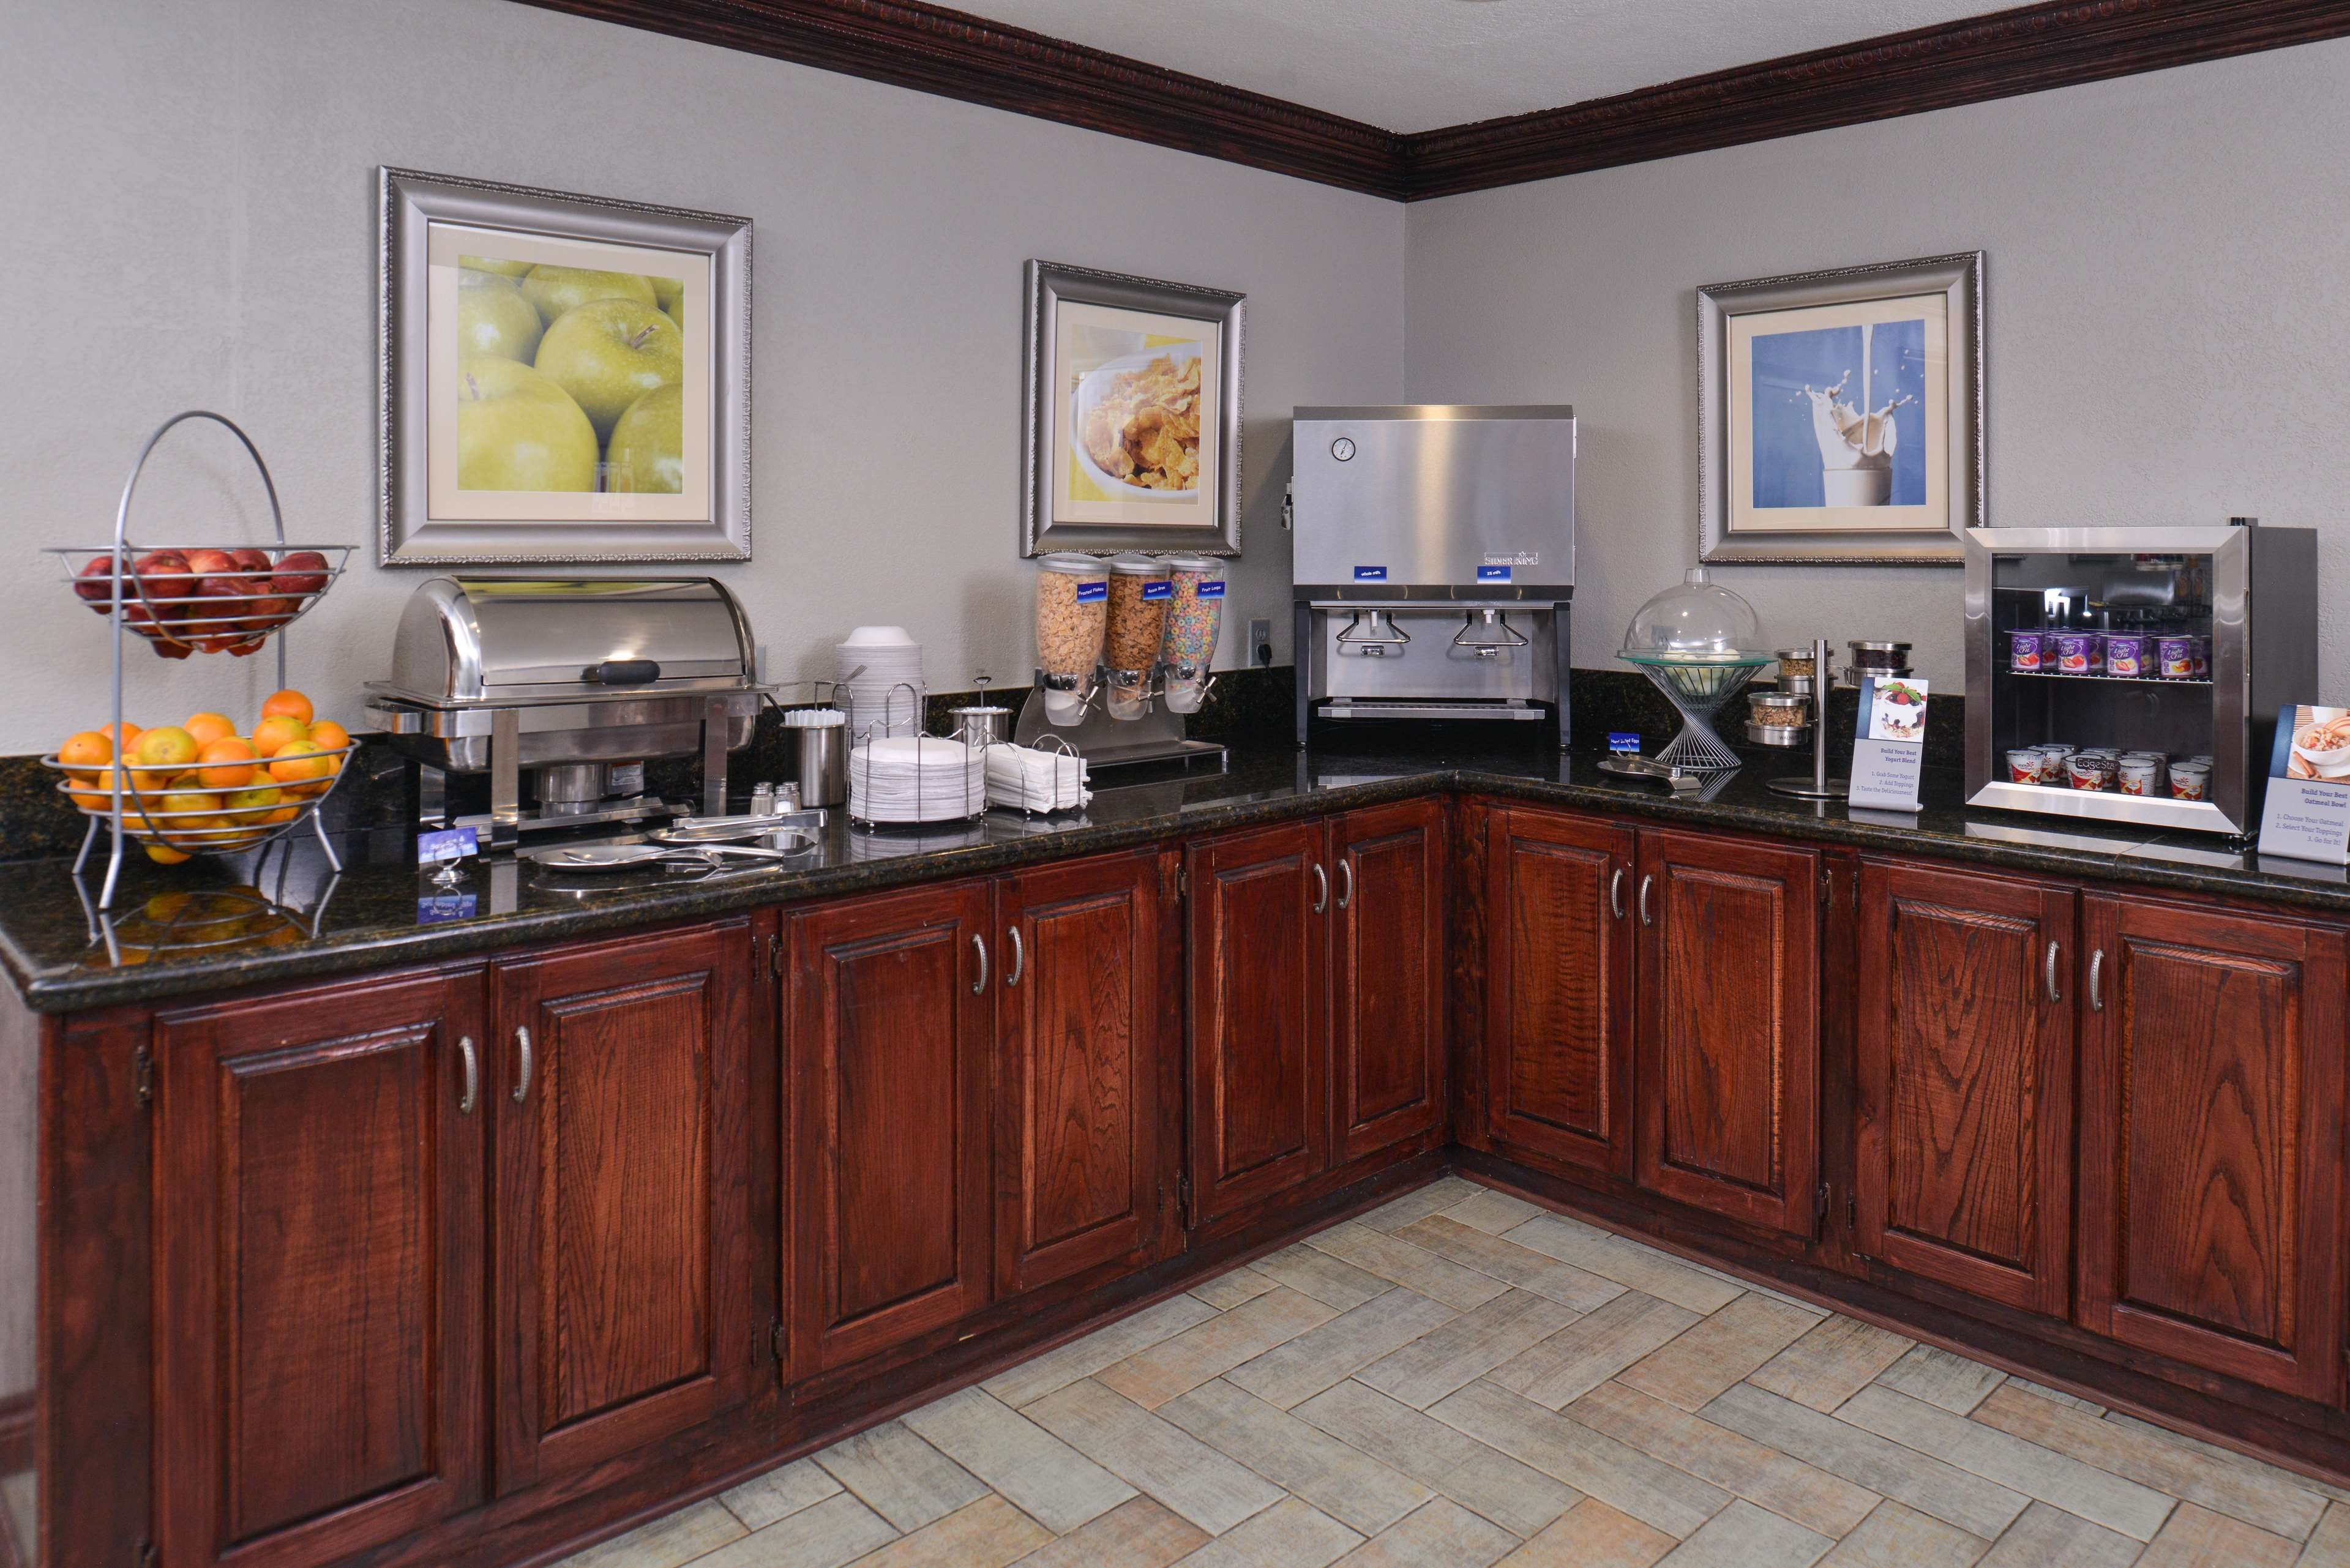 Best Western Irving Inn & Suites at DFW Airport image 26